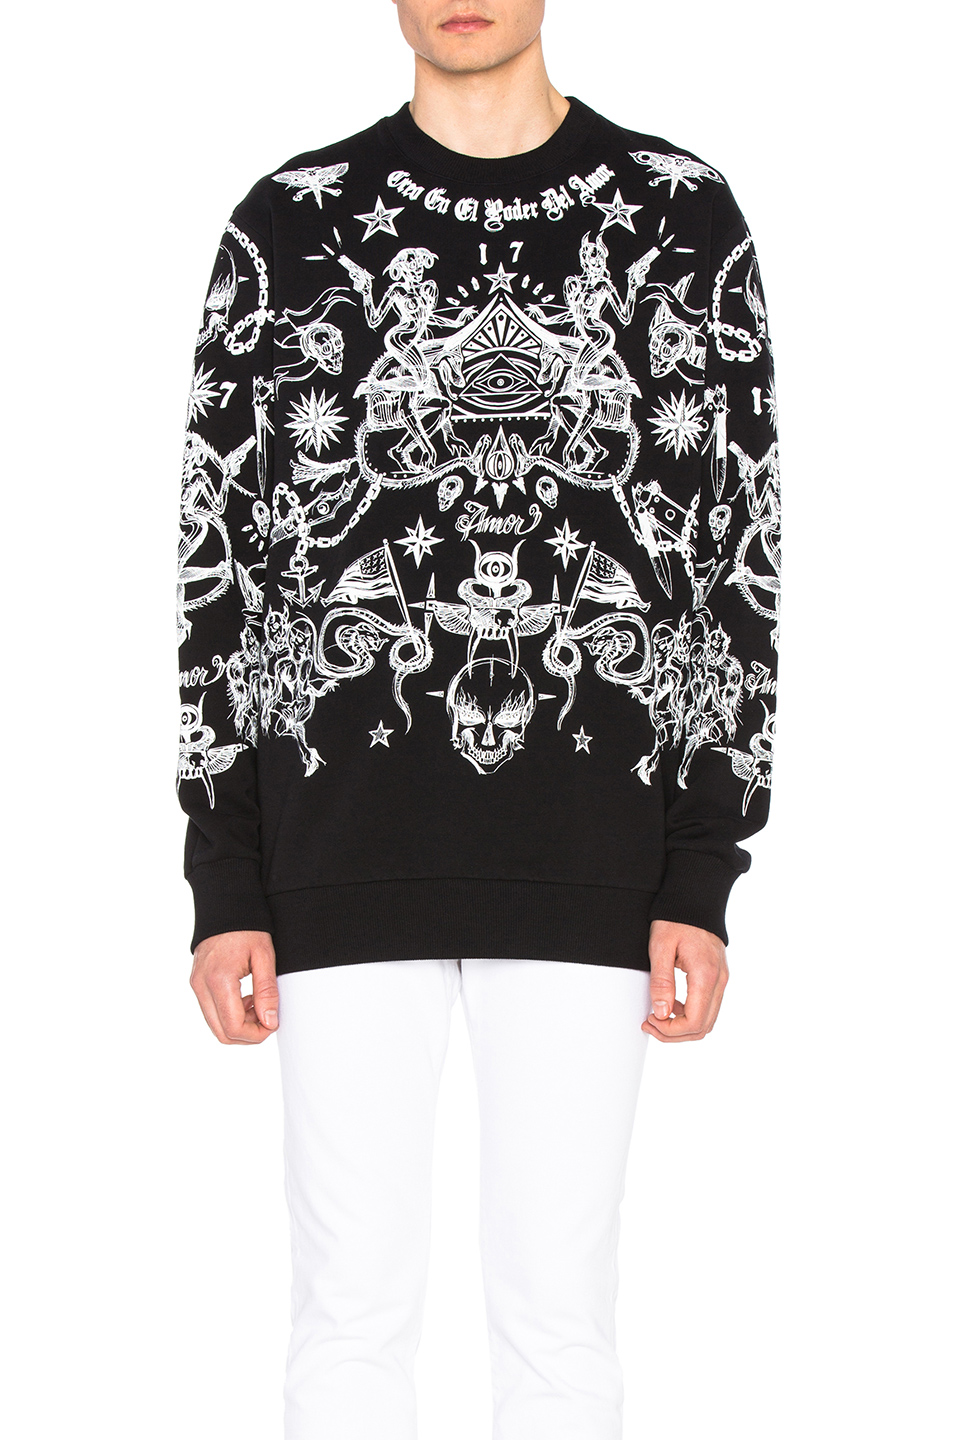 Givenchy Tattoo All Over Sweatshirt in Black,Abstract